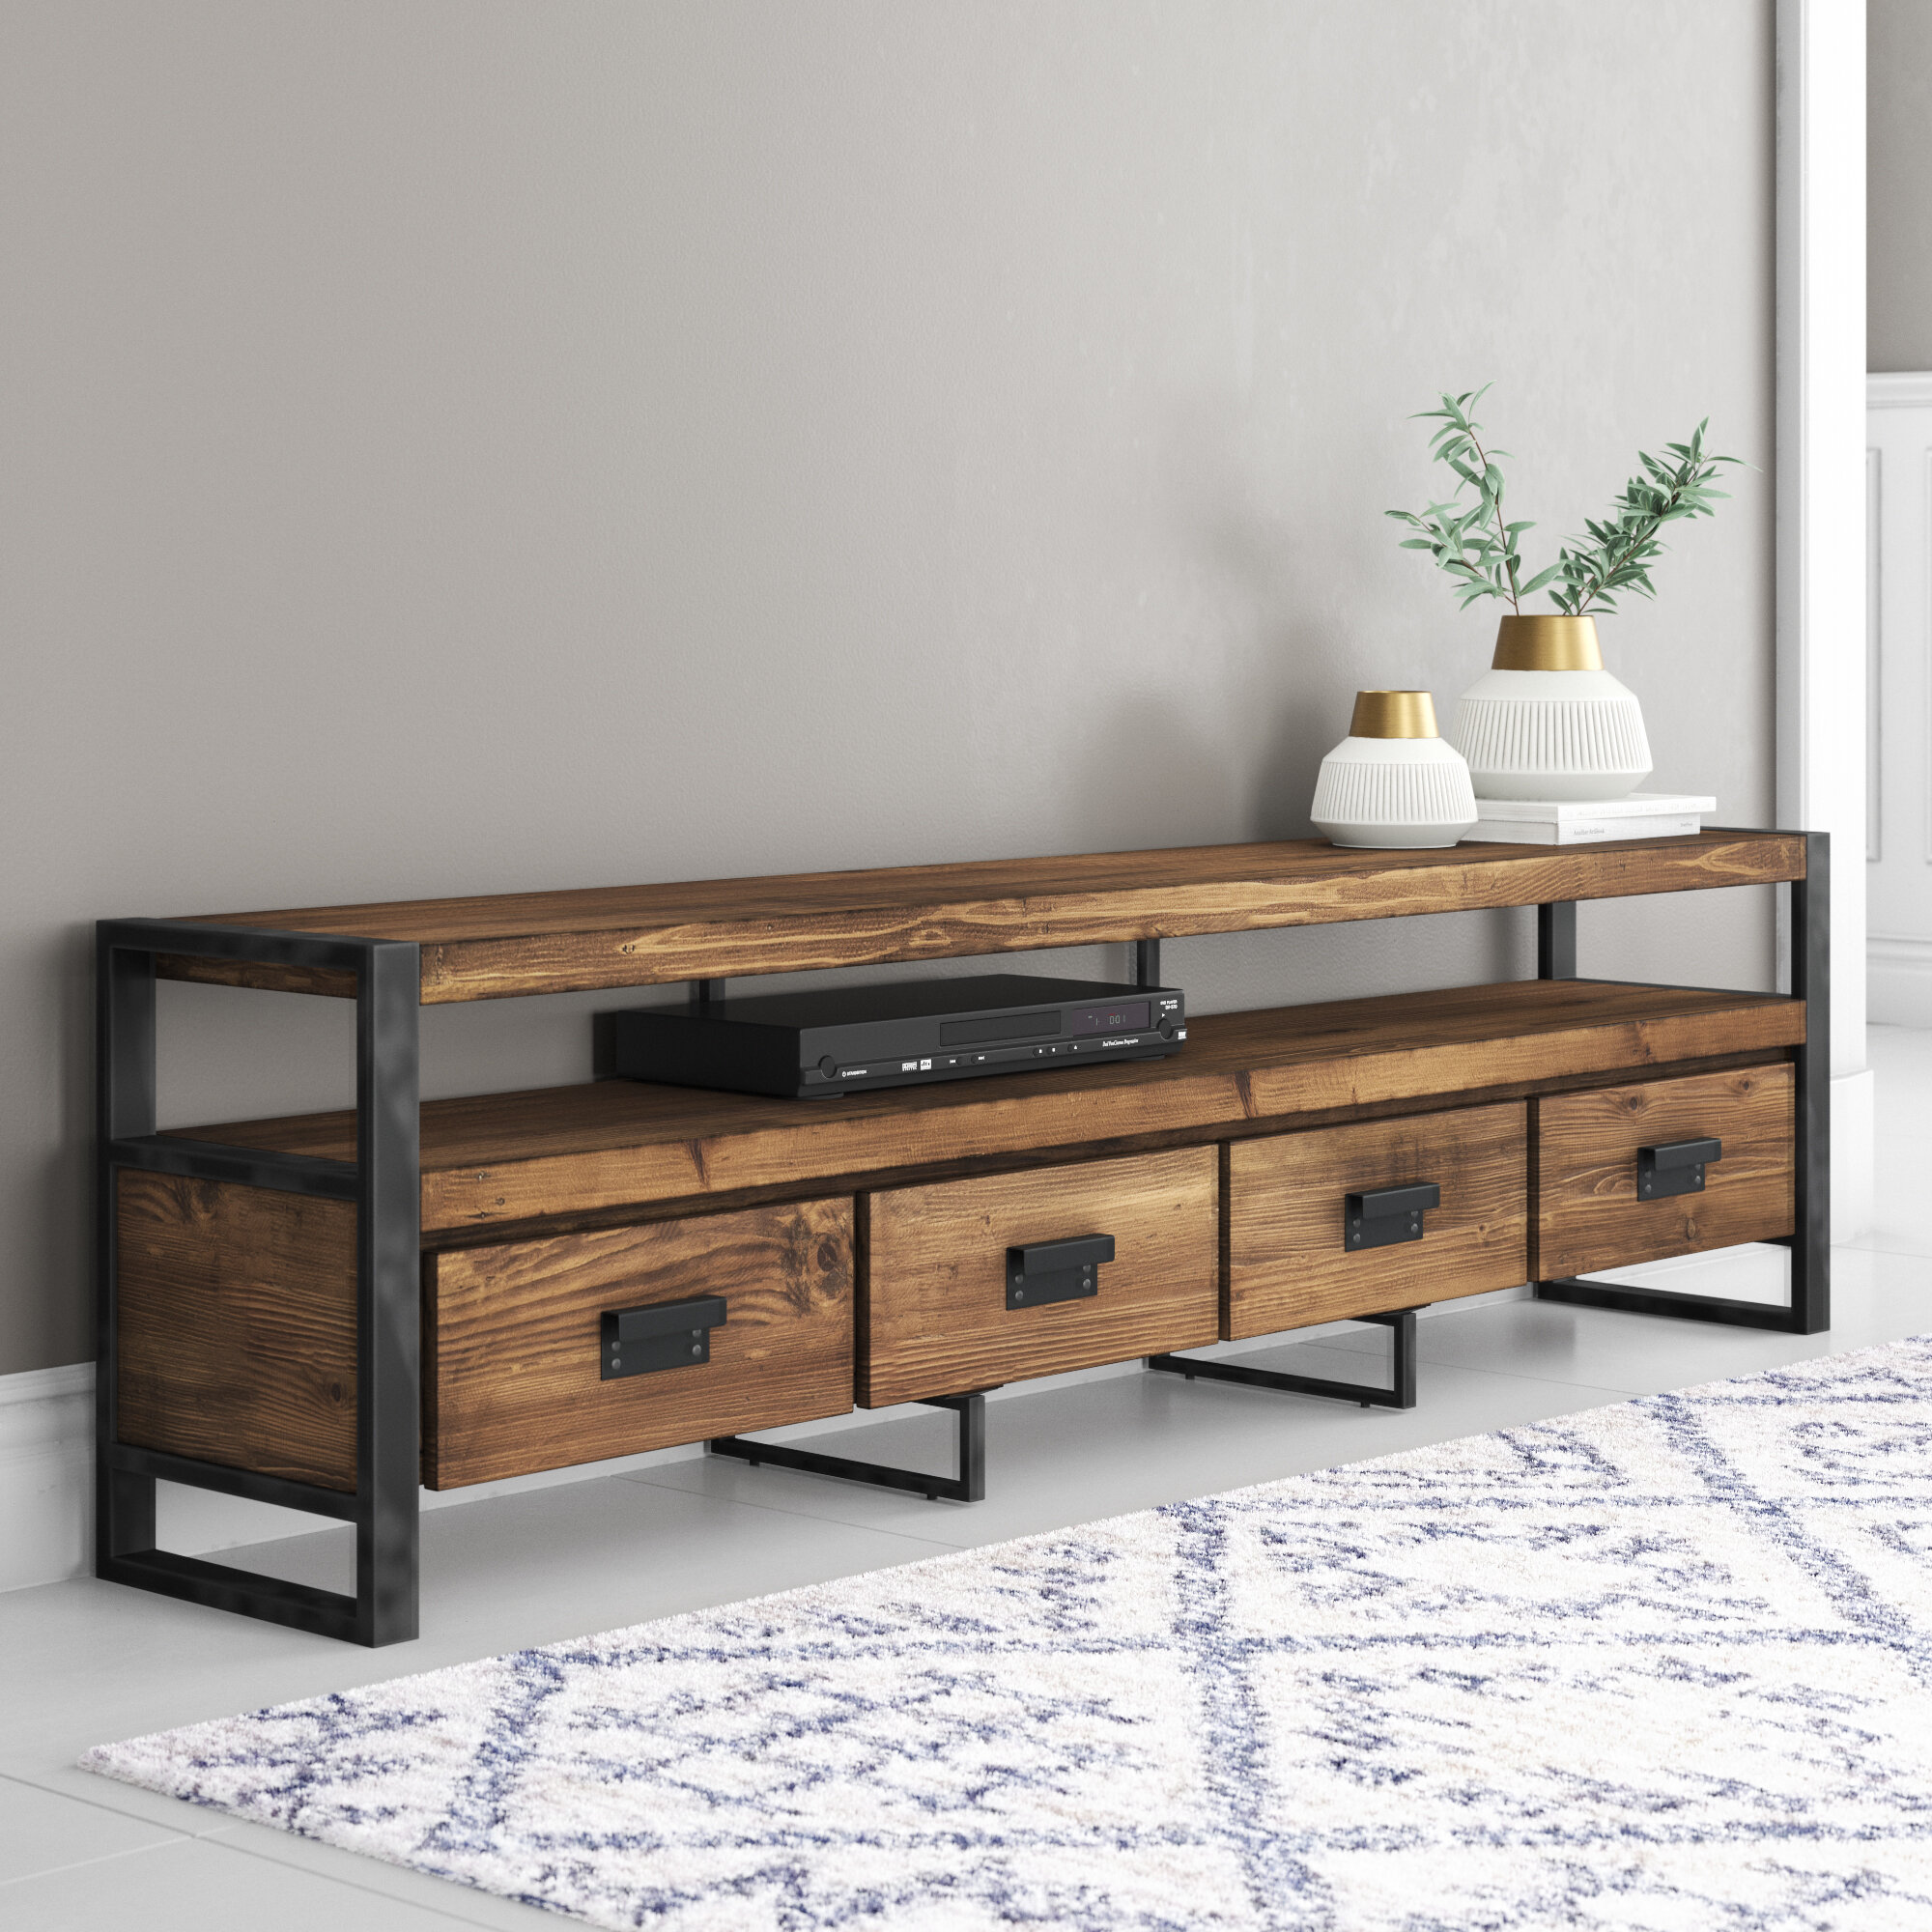 Boxwell Solid Wood Tv Stand For Tvs Up To 88 Inches Reviews Joss Main